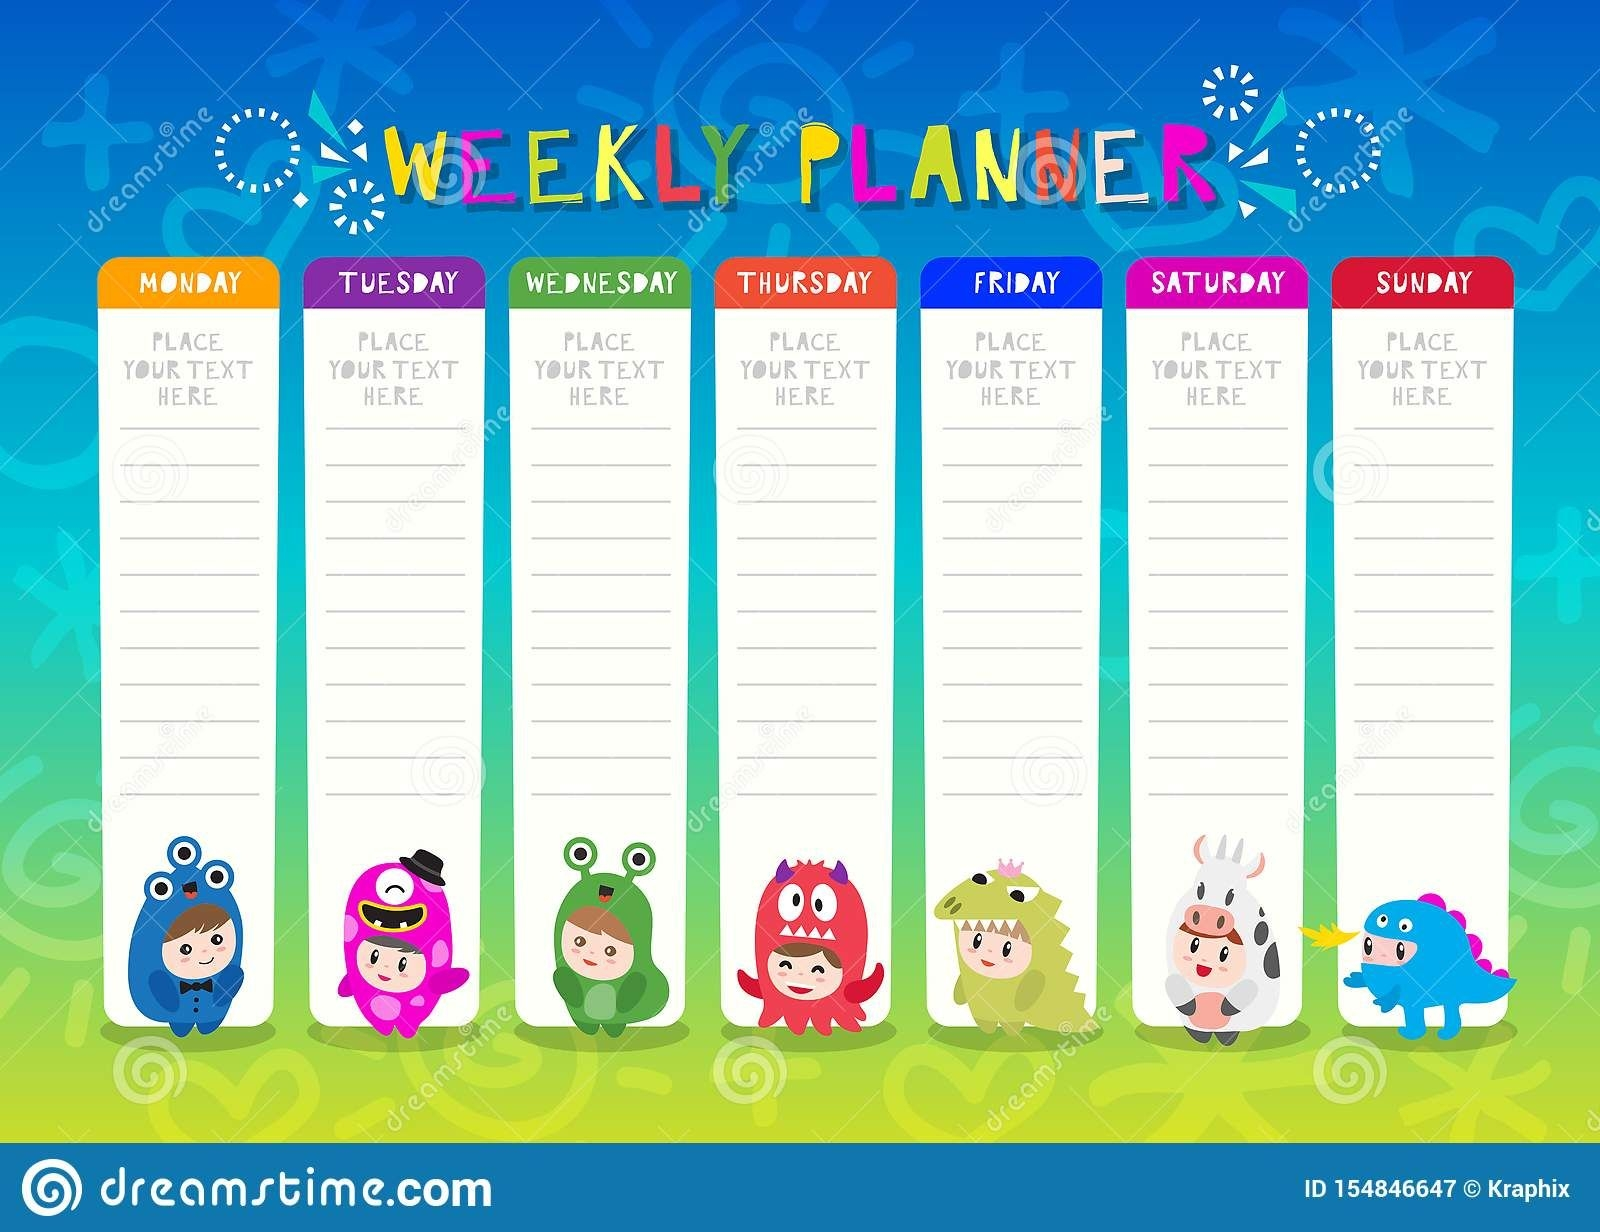 Kids Weekly Planner With Cute Monster Cartoon Characters. A